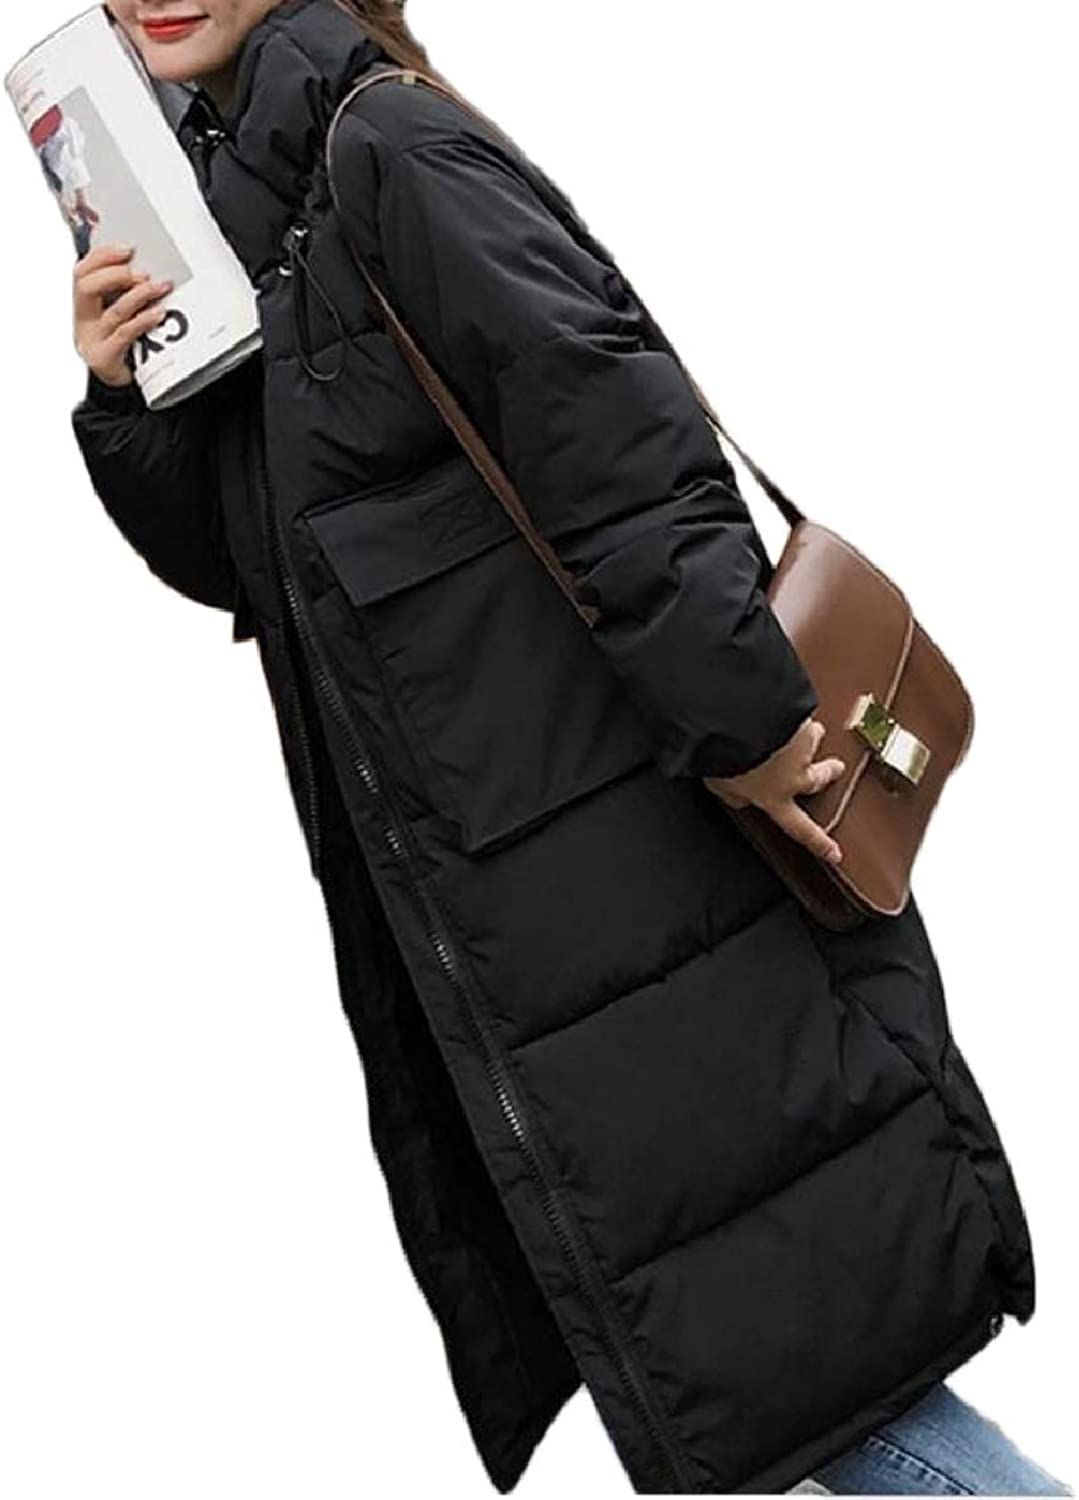 LEISHOP Women's Winter Warm Long Length Thicken Stand Collar Down Jacket Coat